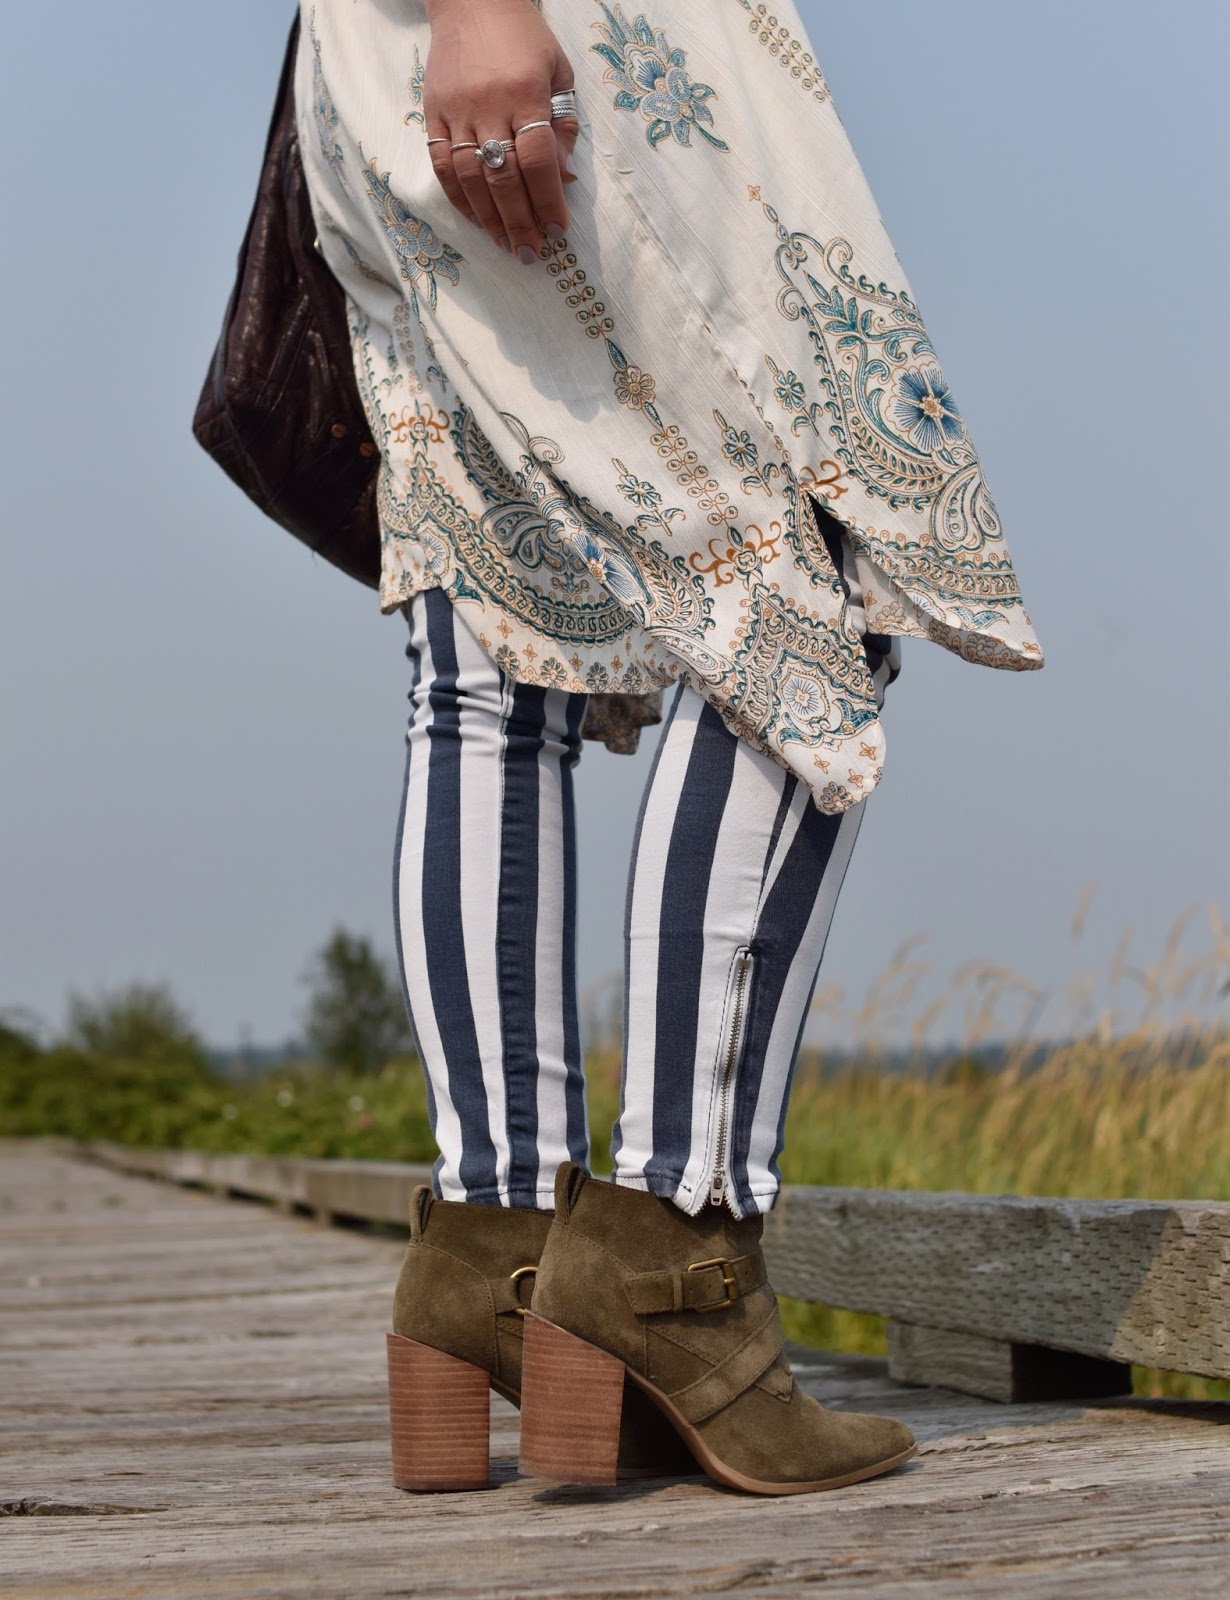 Monika Faulkner personal style inspiration - striped skinny jeans, Nine West ankle boots, damask-patterned kimono